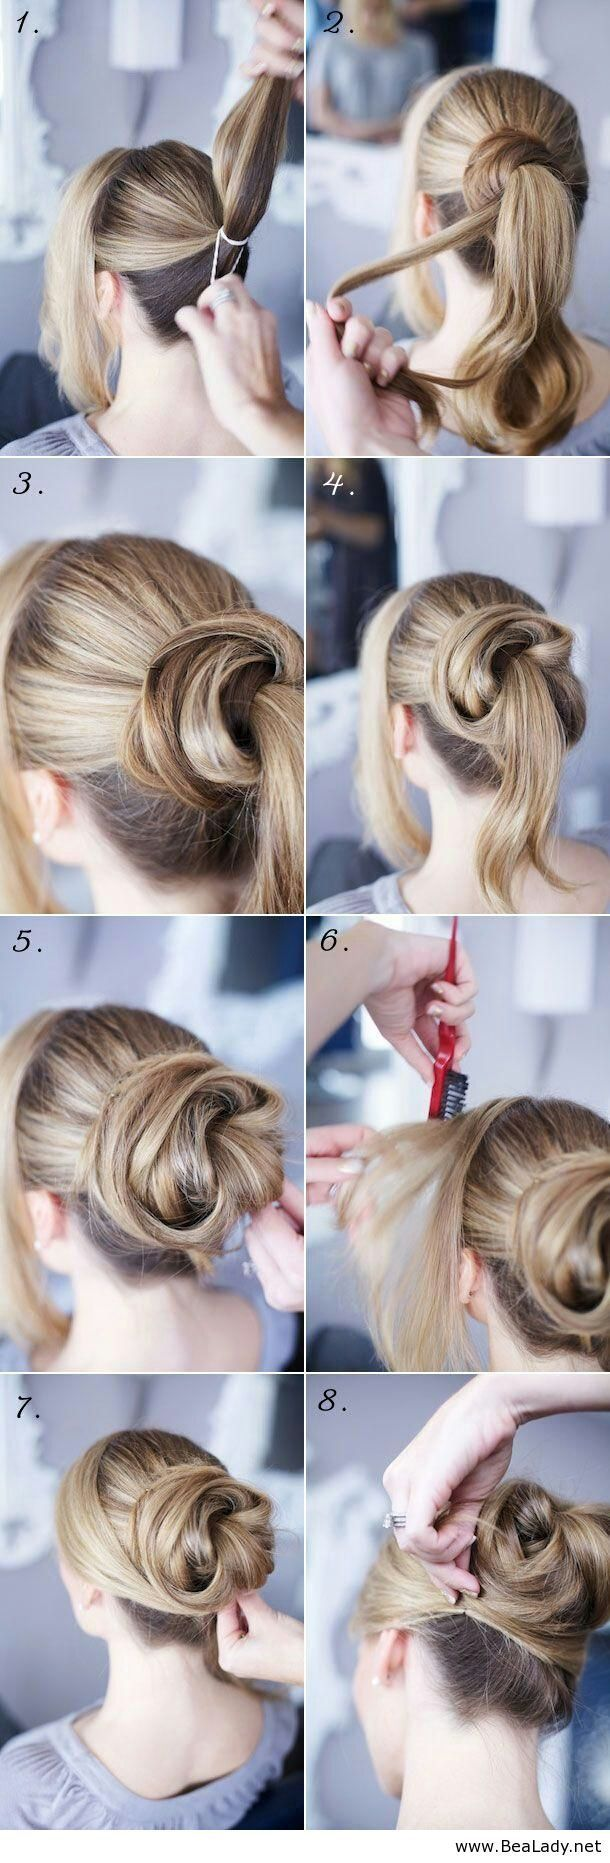 Cute hairstyle - Perfect for a wedding or cocktail party- Will it work for dancing?